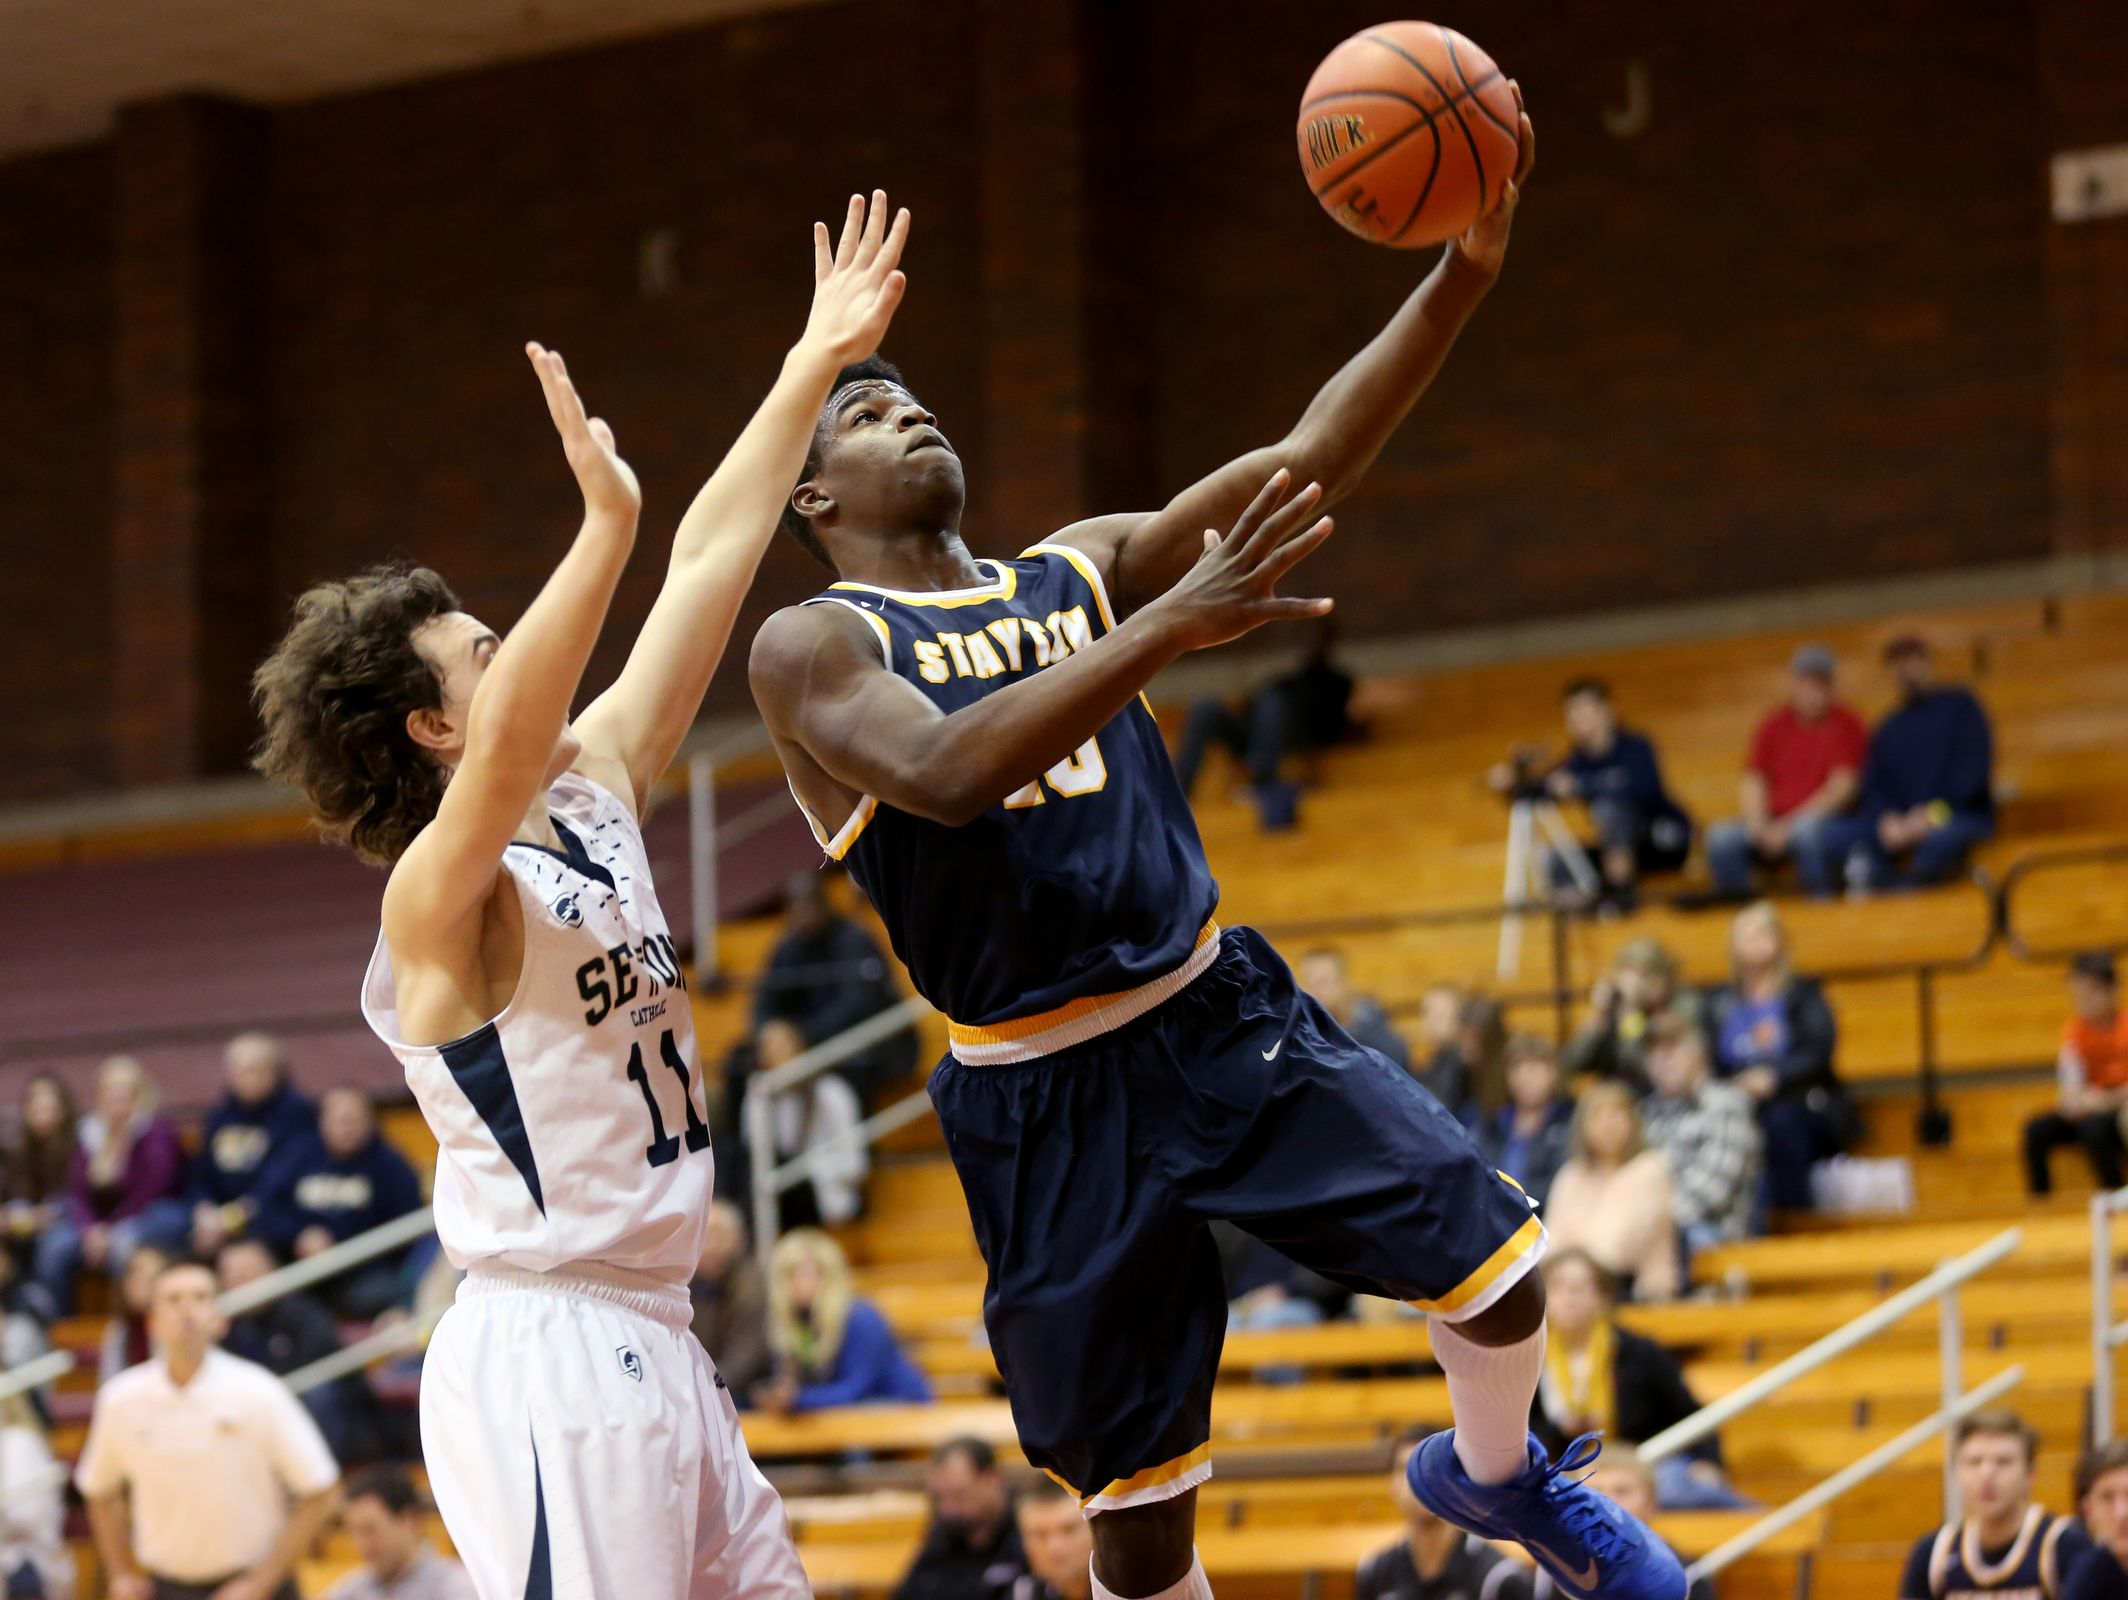 Stayton's Jerry Daniels (25) goes for a layup past Seton's Ben Owen (11) in the Stayton vs. Seton Catholic boy's basketball game on the first day of the Capitol City Classic tournament at Willamette University in Salem on Wednesday, Dec. 21, 2016. Stayton won the game 62-58.